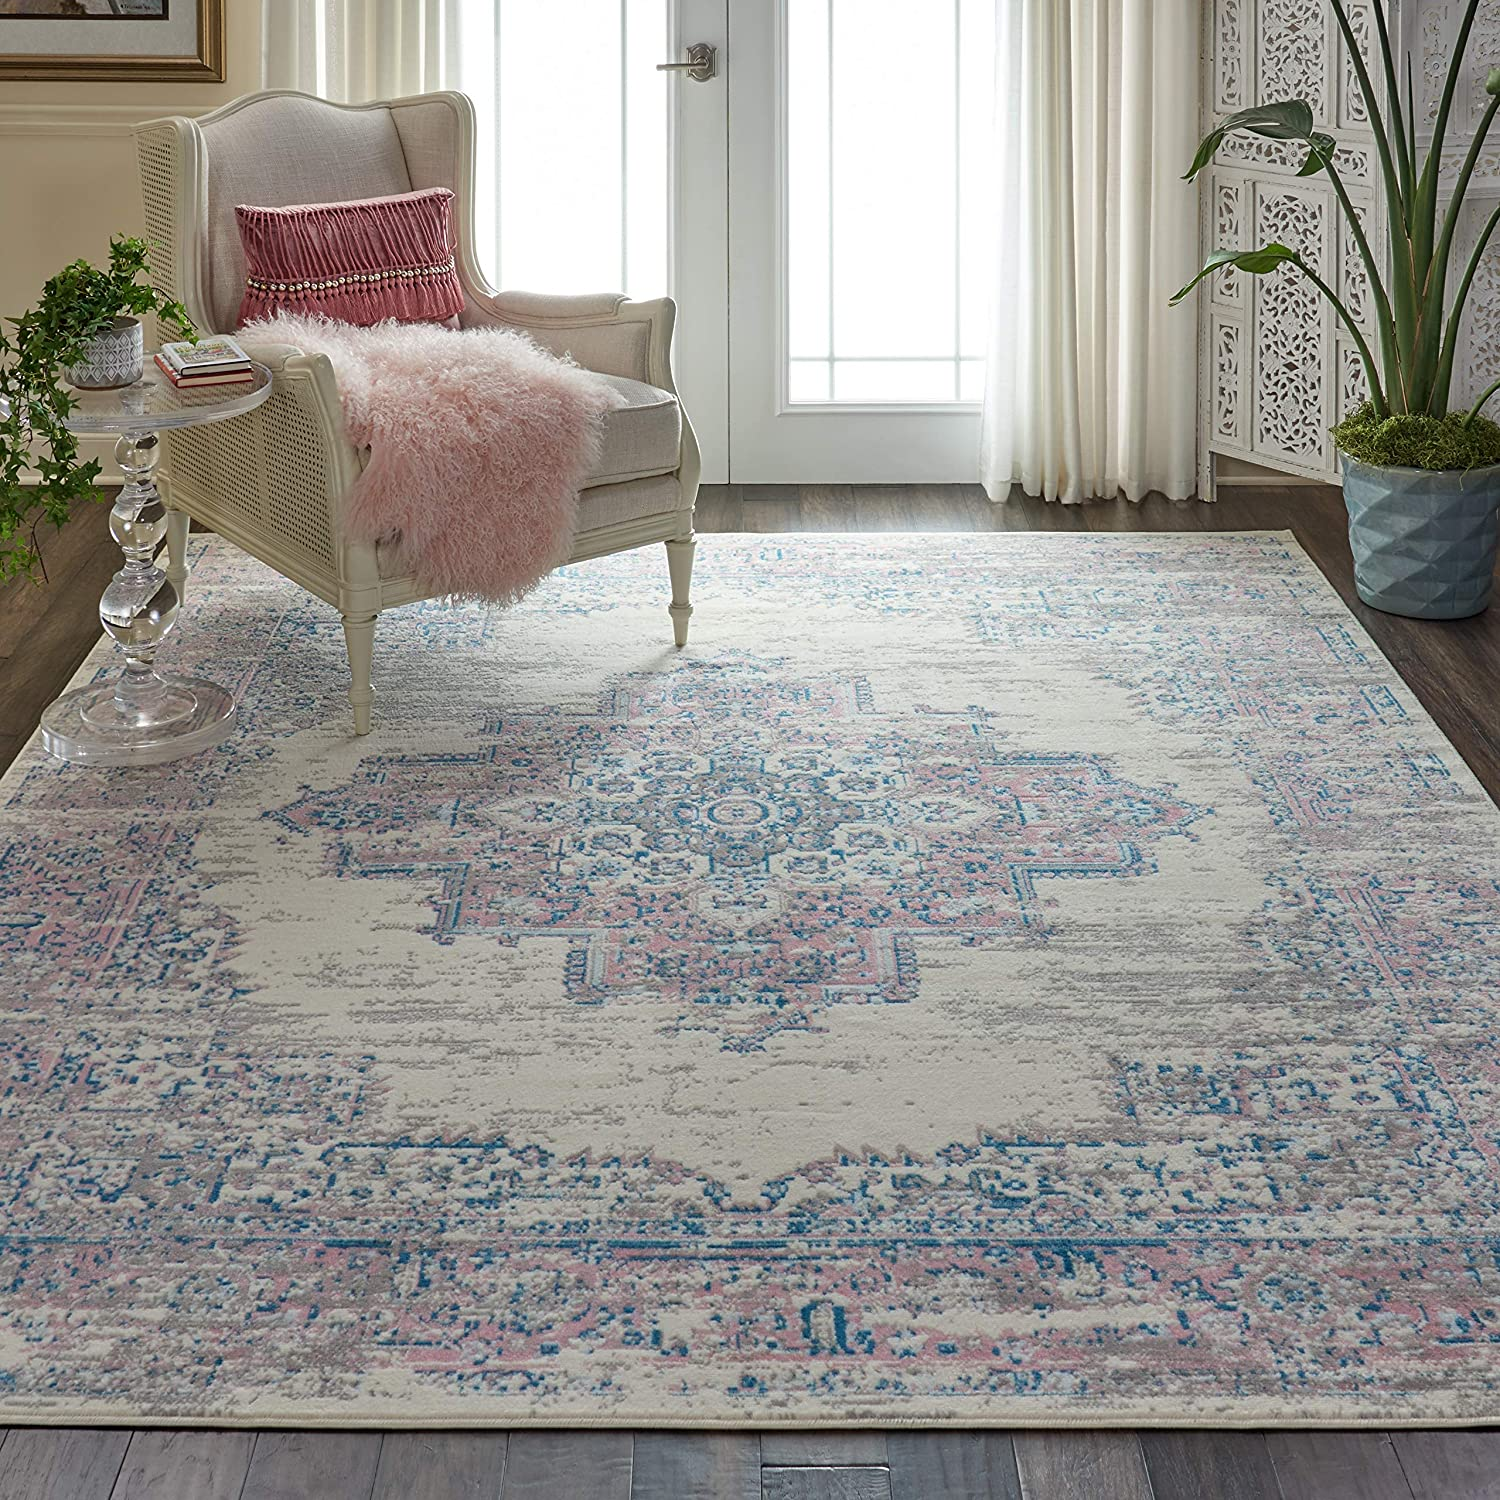 Nourison Grafix Persian Center Medallion Ivory/Pink Area Rug 7'10